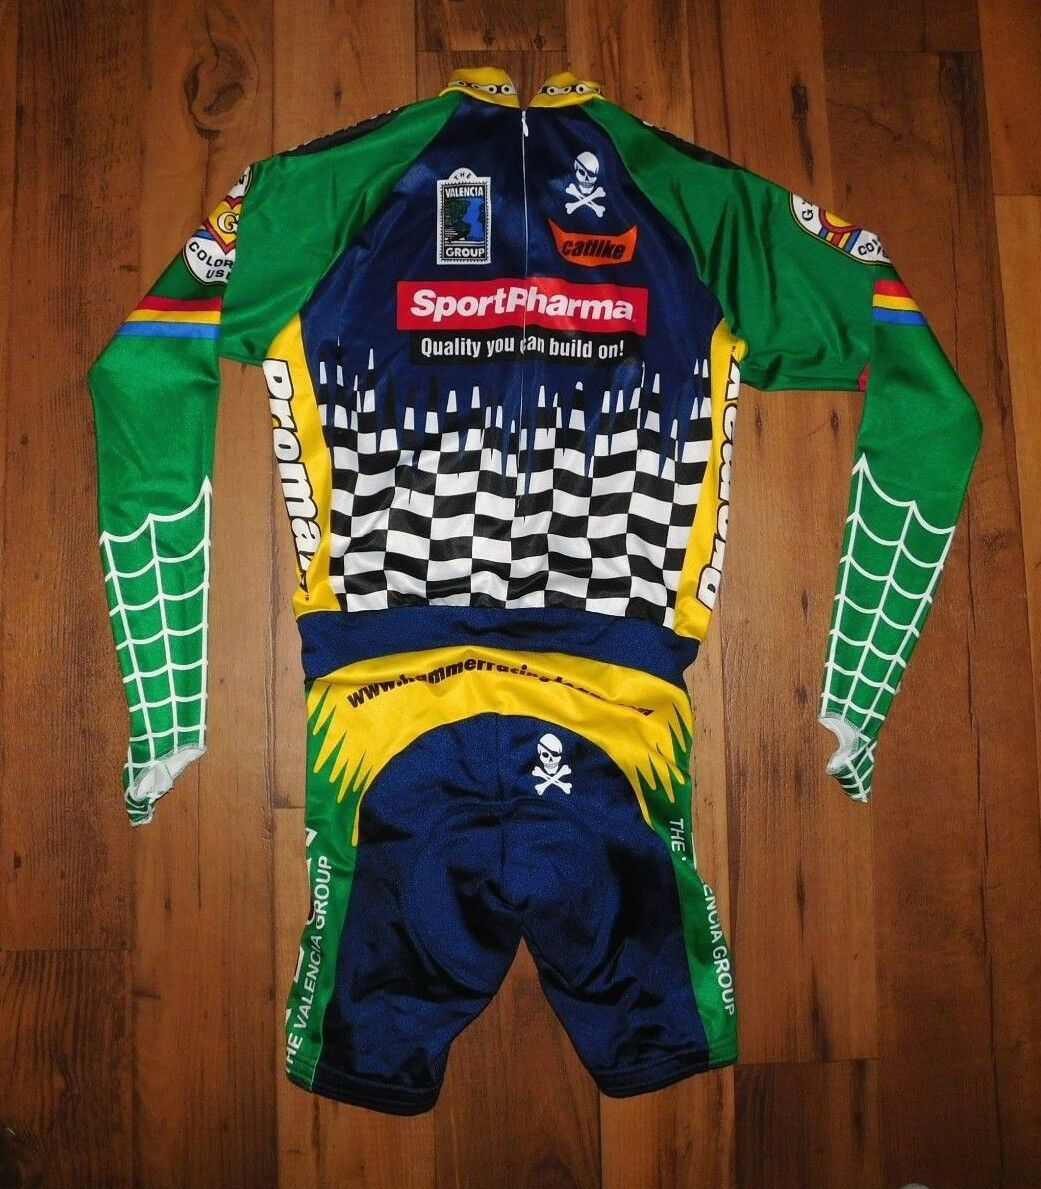 Primal Wear Sport Pharma Racing Team Full Cycling Suit Bib size L Longsleeve